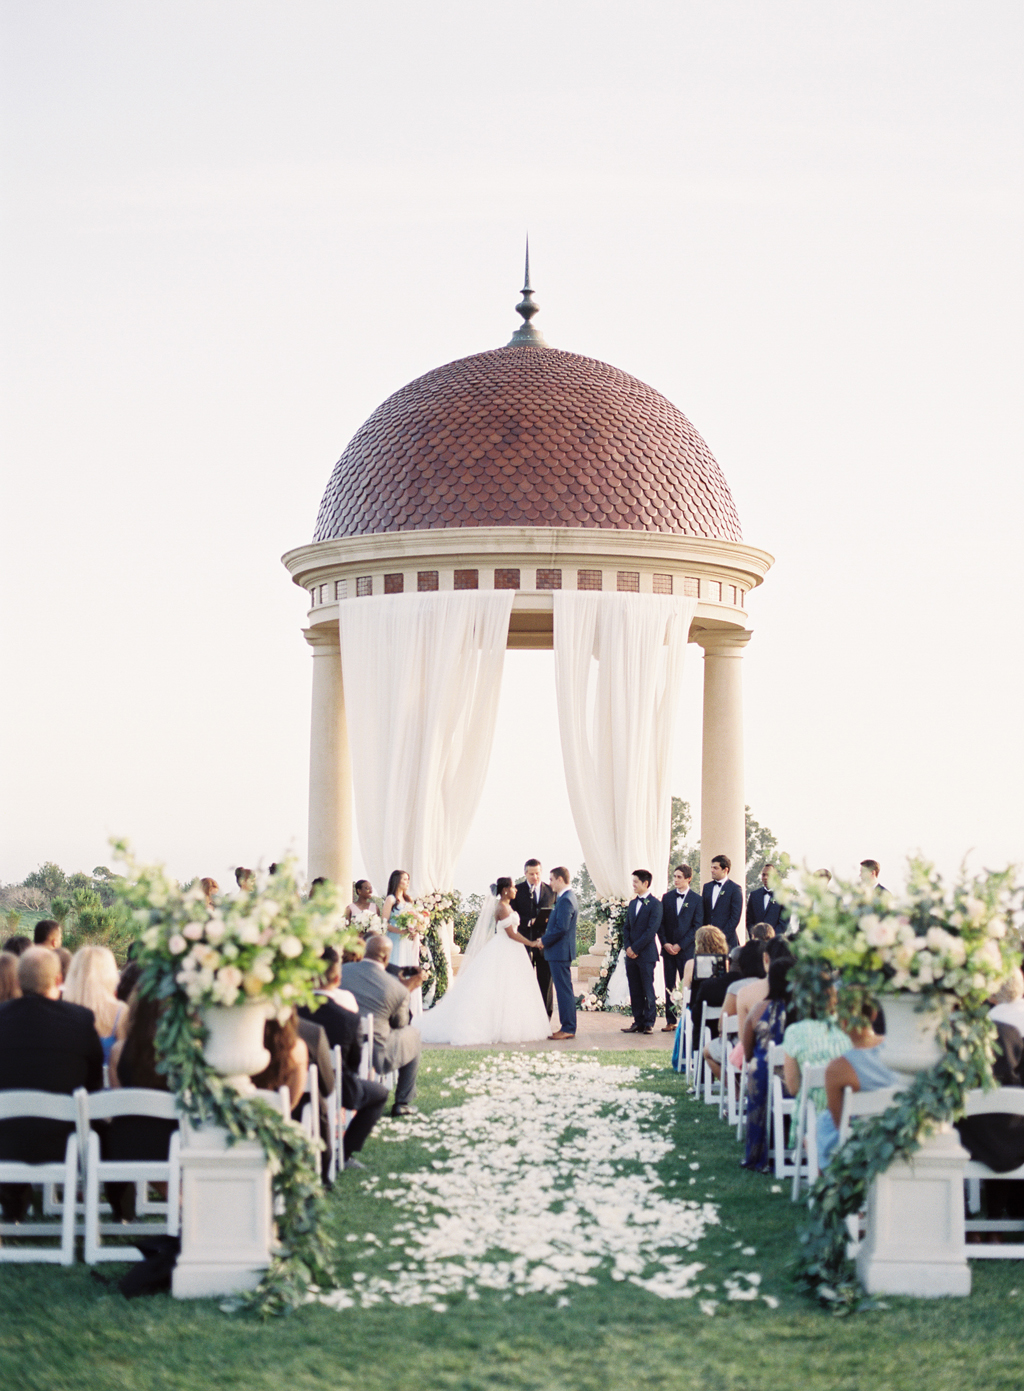 a wedding takes place at pelican hill resort in newport beach, california.